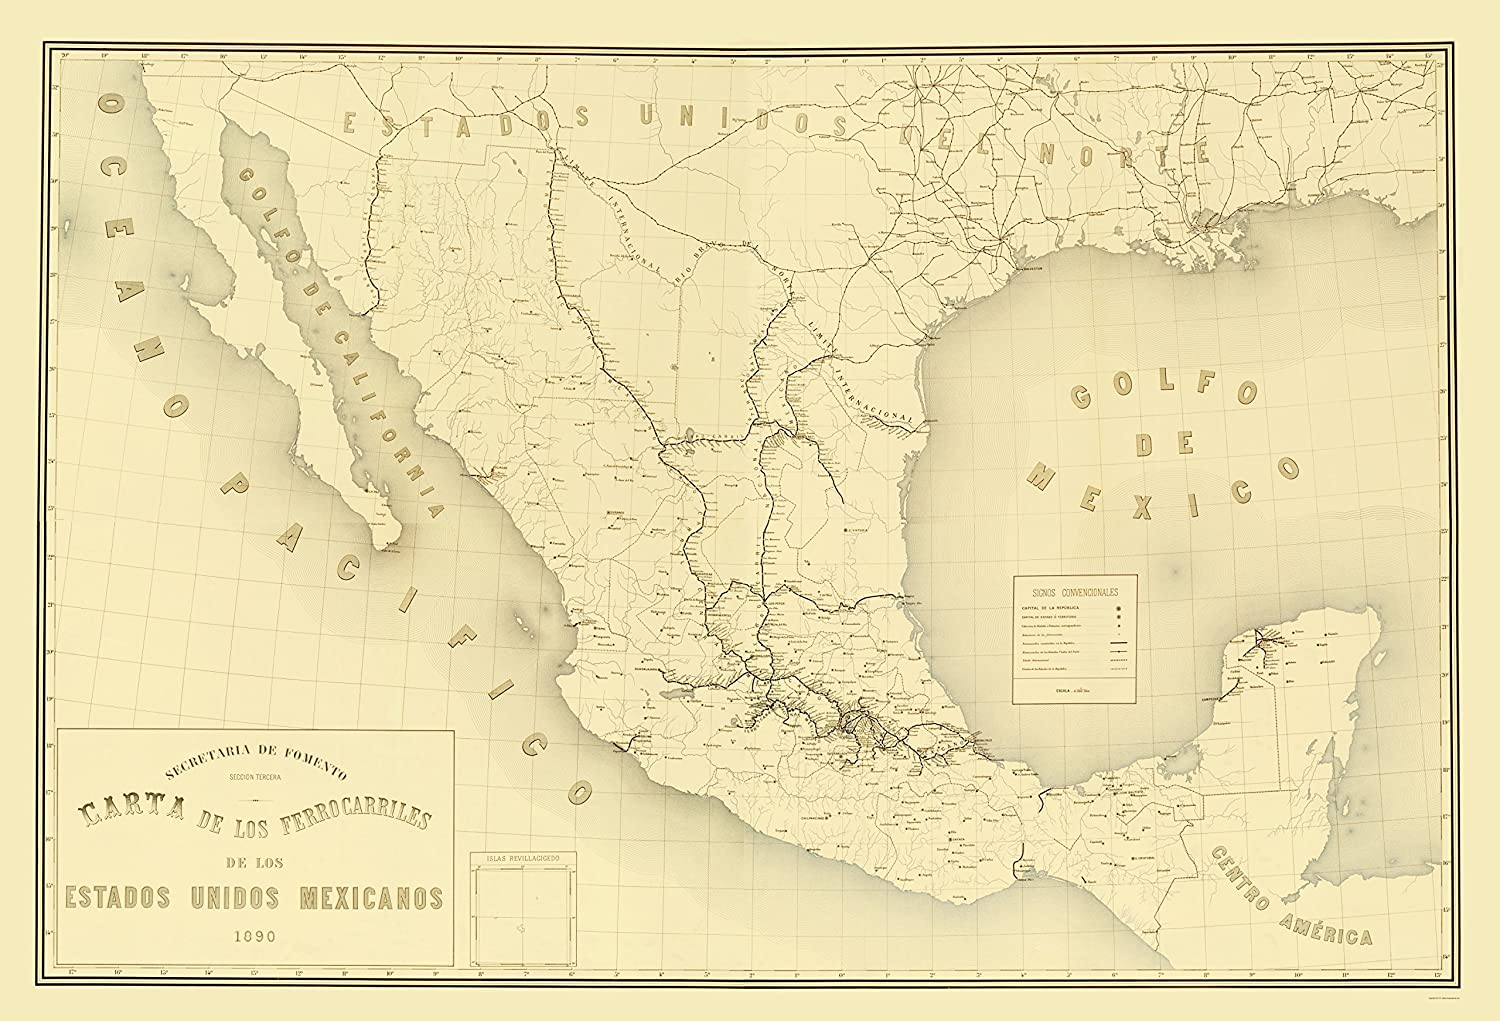 Golfo De Mexico Map.Amazon Com Old Mexico Map Mexico Railroads Hermanos 1890 23 X